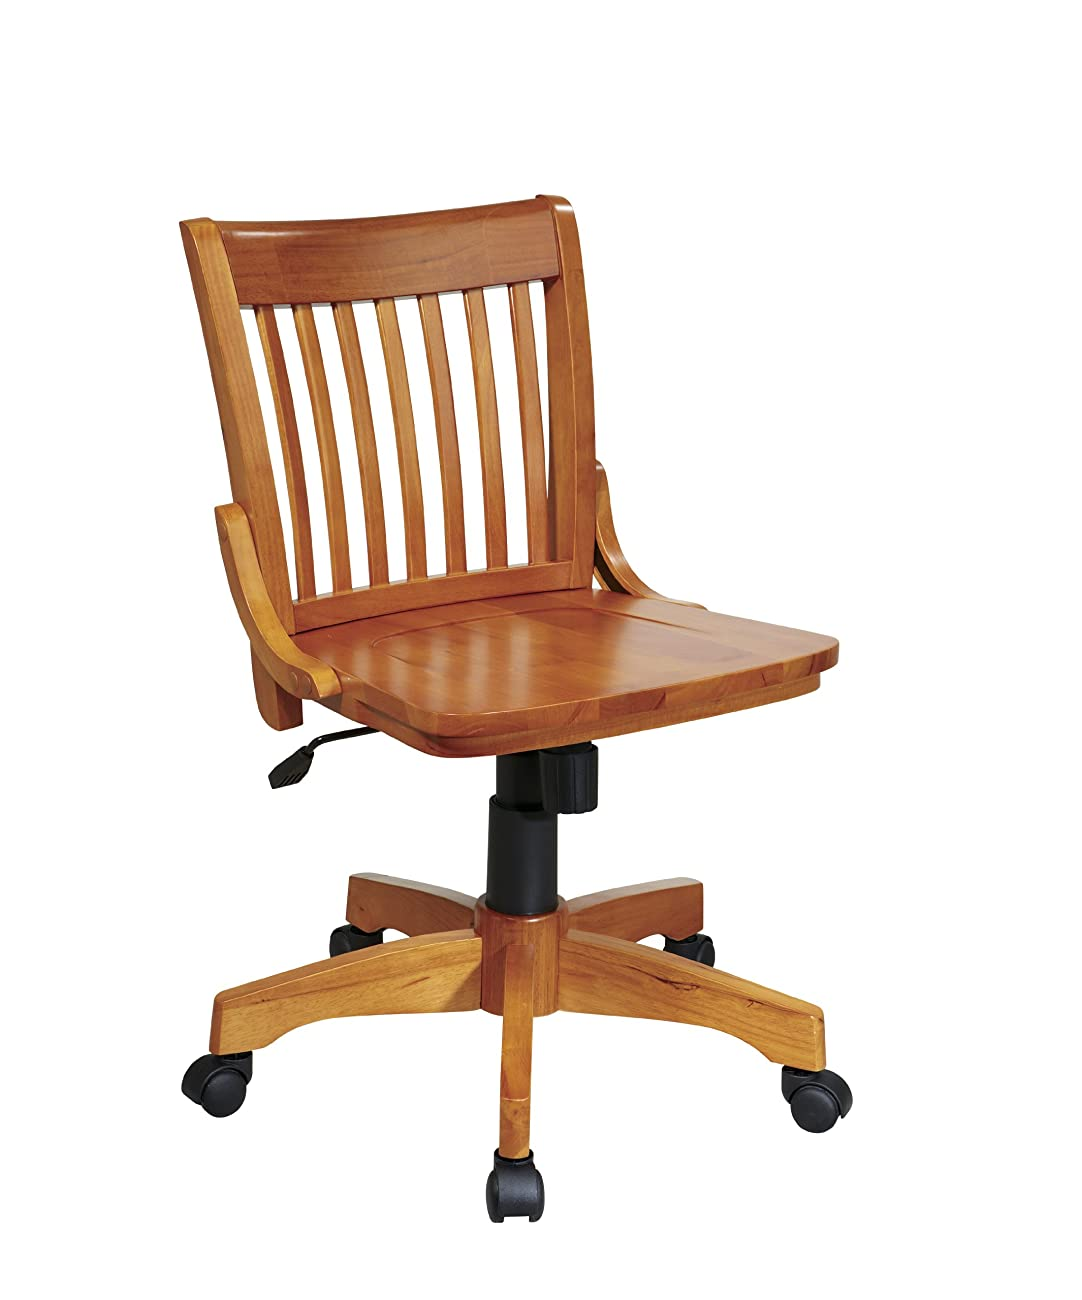 Office Star Deluxe Armless Wood Bankers Desk Chair with Wood Seat, Fruit Wood 0